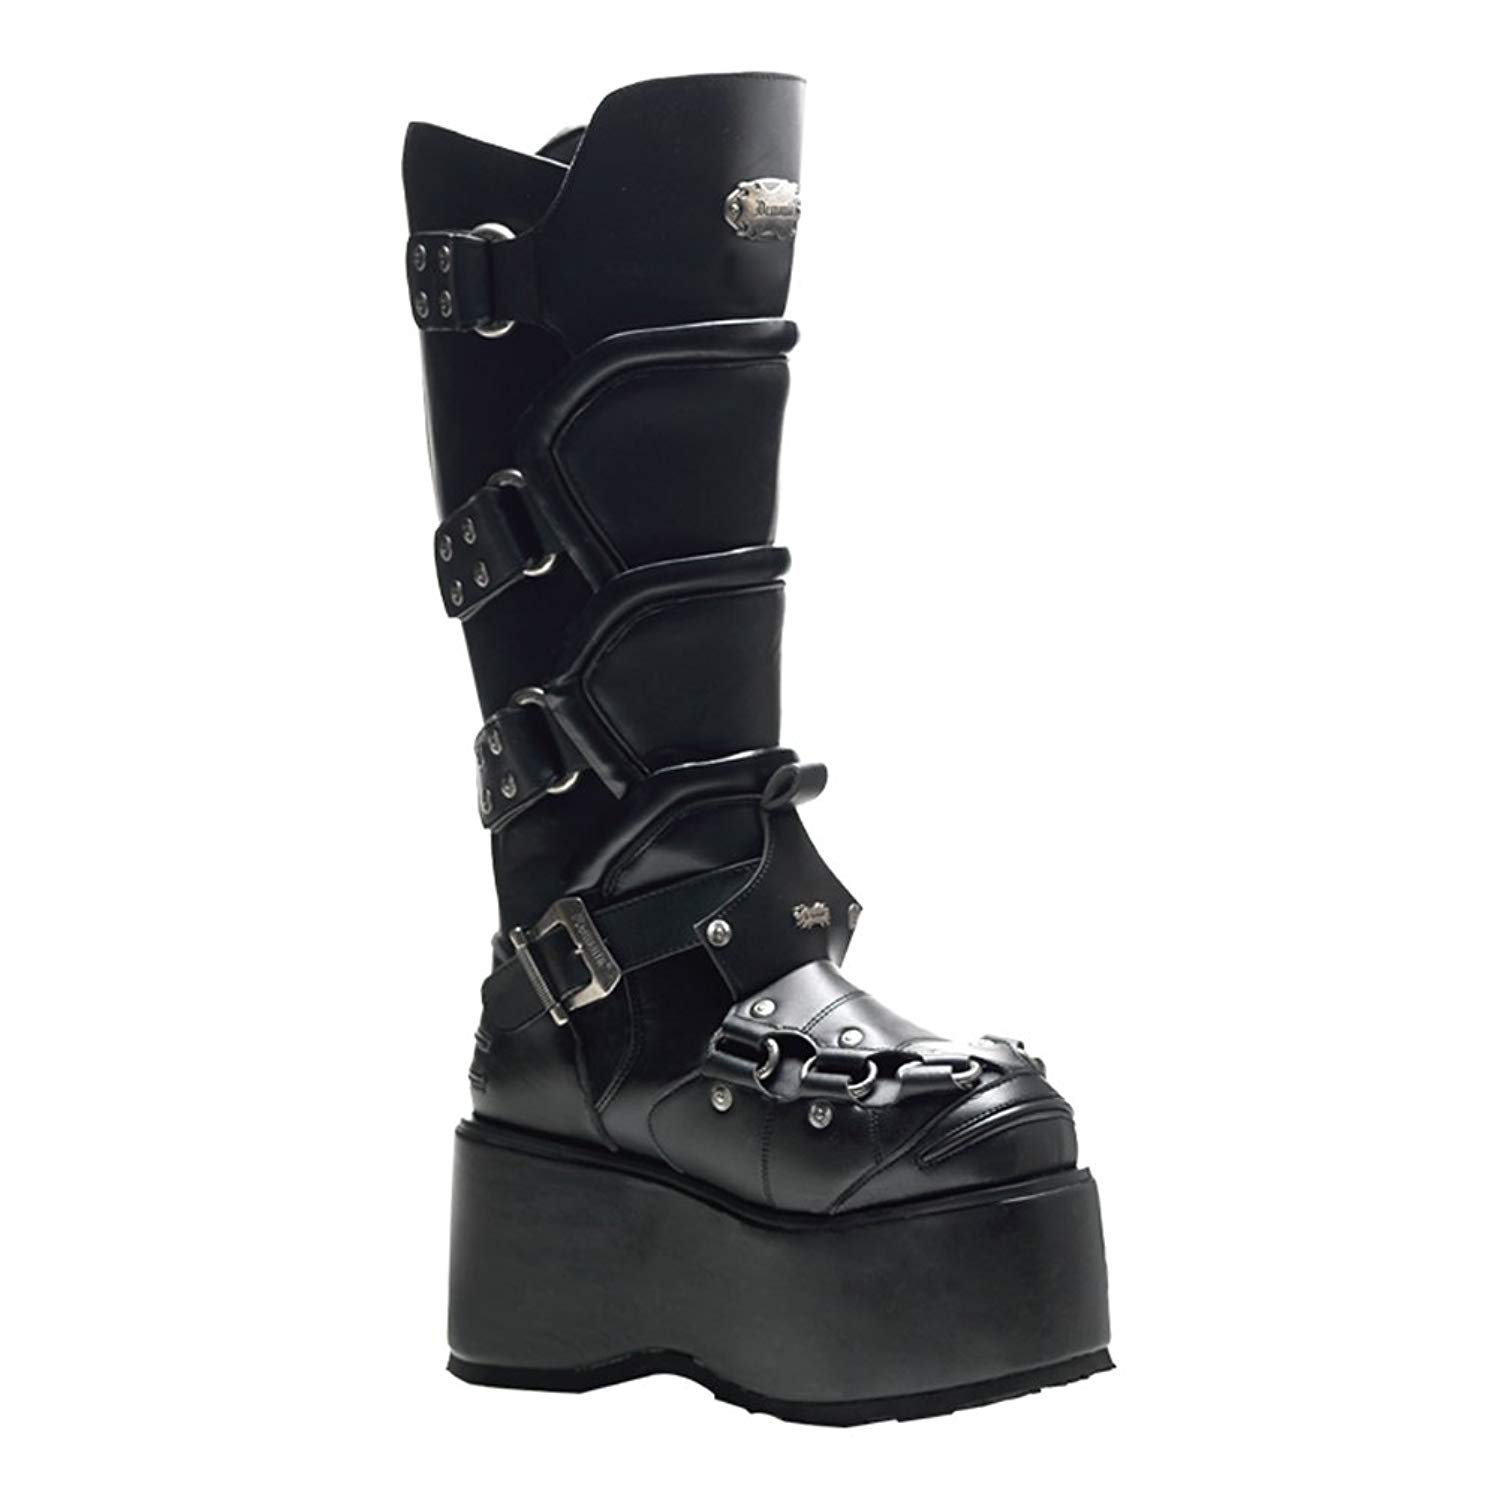 487325c68e8 Get Quotations · Summitfashions 3 1 2 Inch MENS BOOTS Knee High Combat Boots  Wedge Platform Buckles